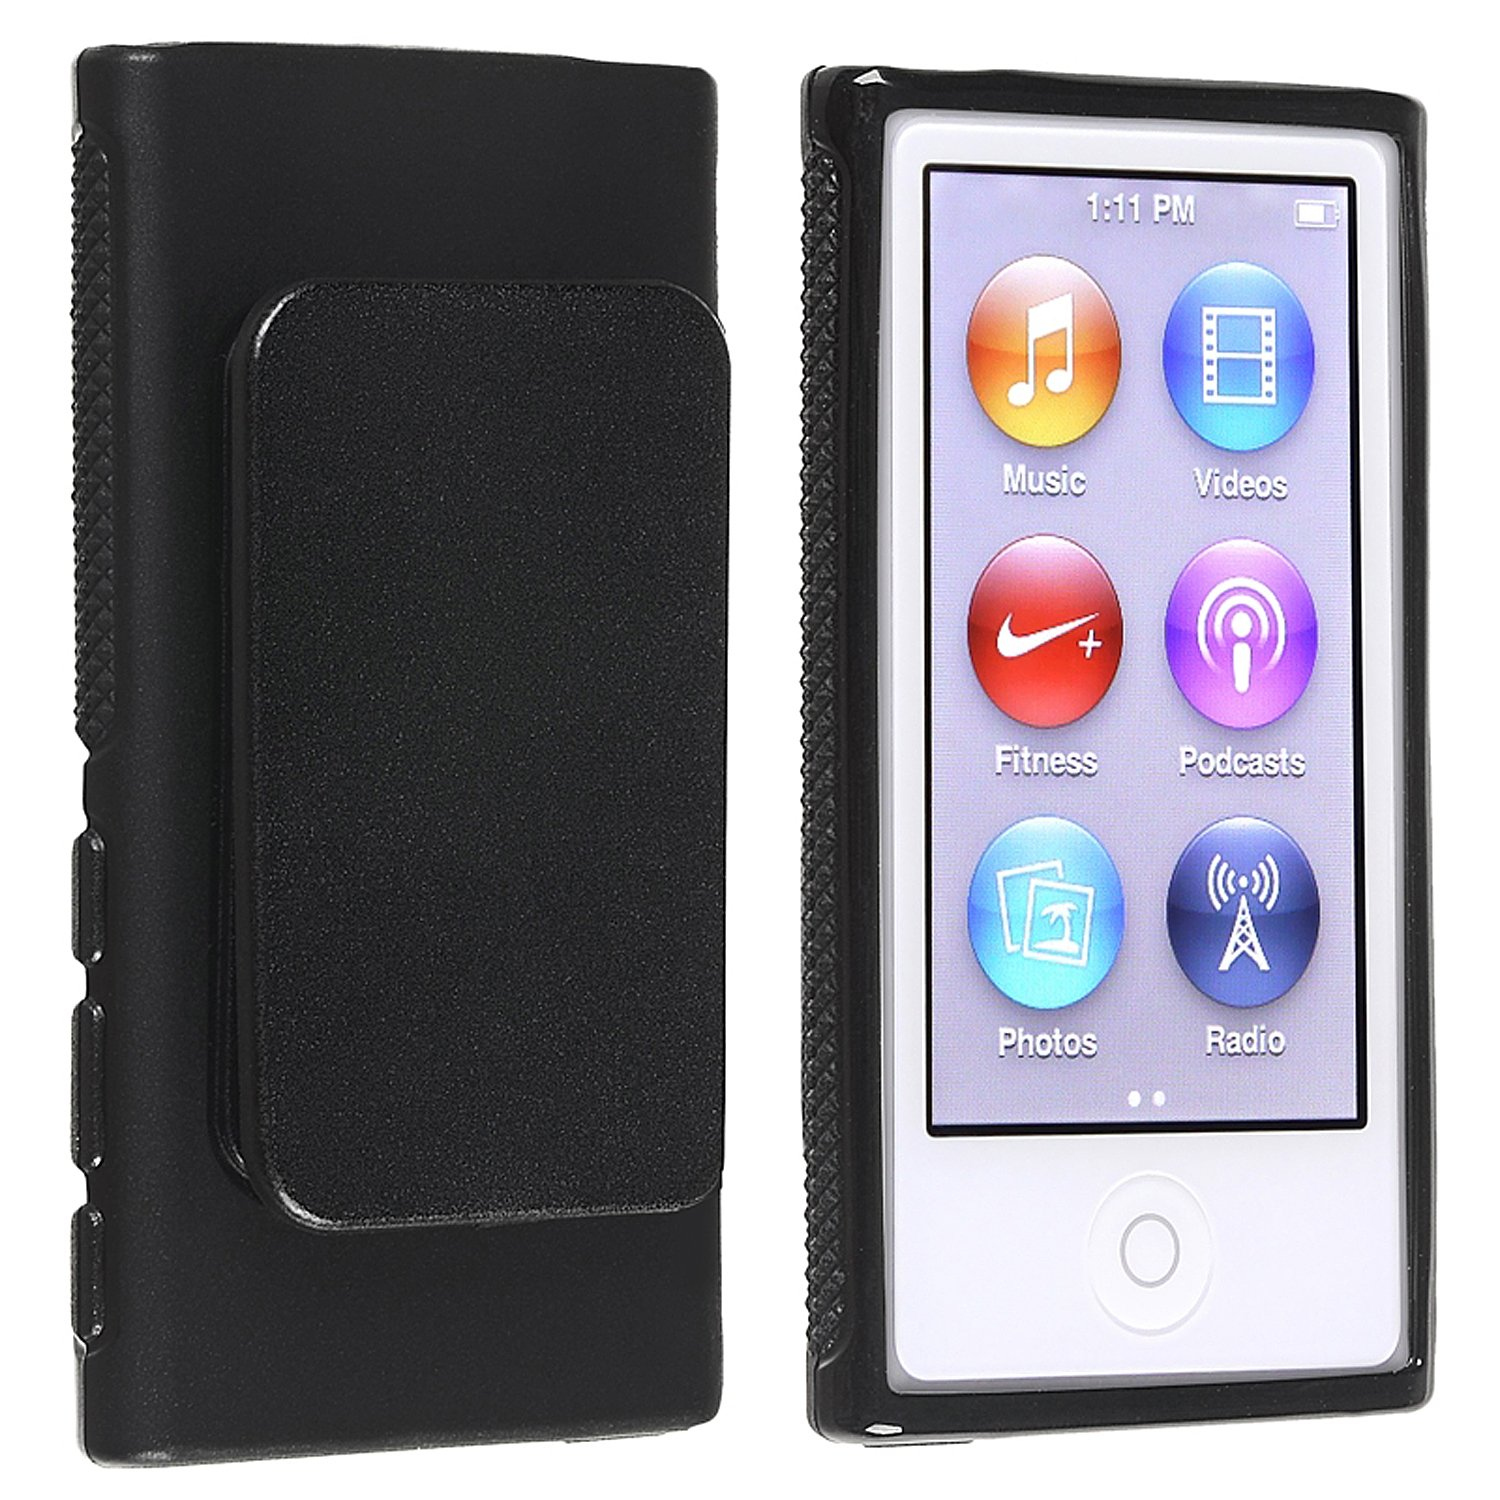 Everydaysource Compatible With Apple iPod nano 7th Generation Black TPU Rubber Skin Case with Belt Clip 857106